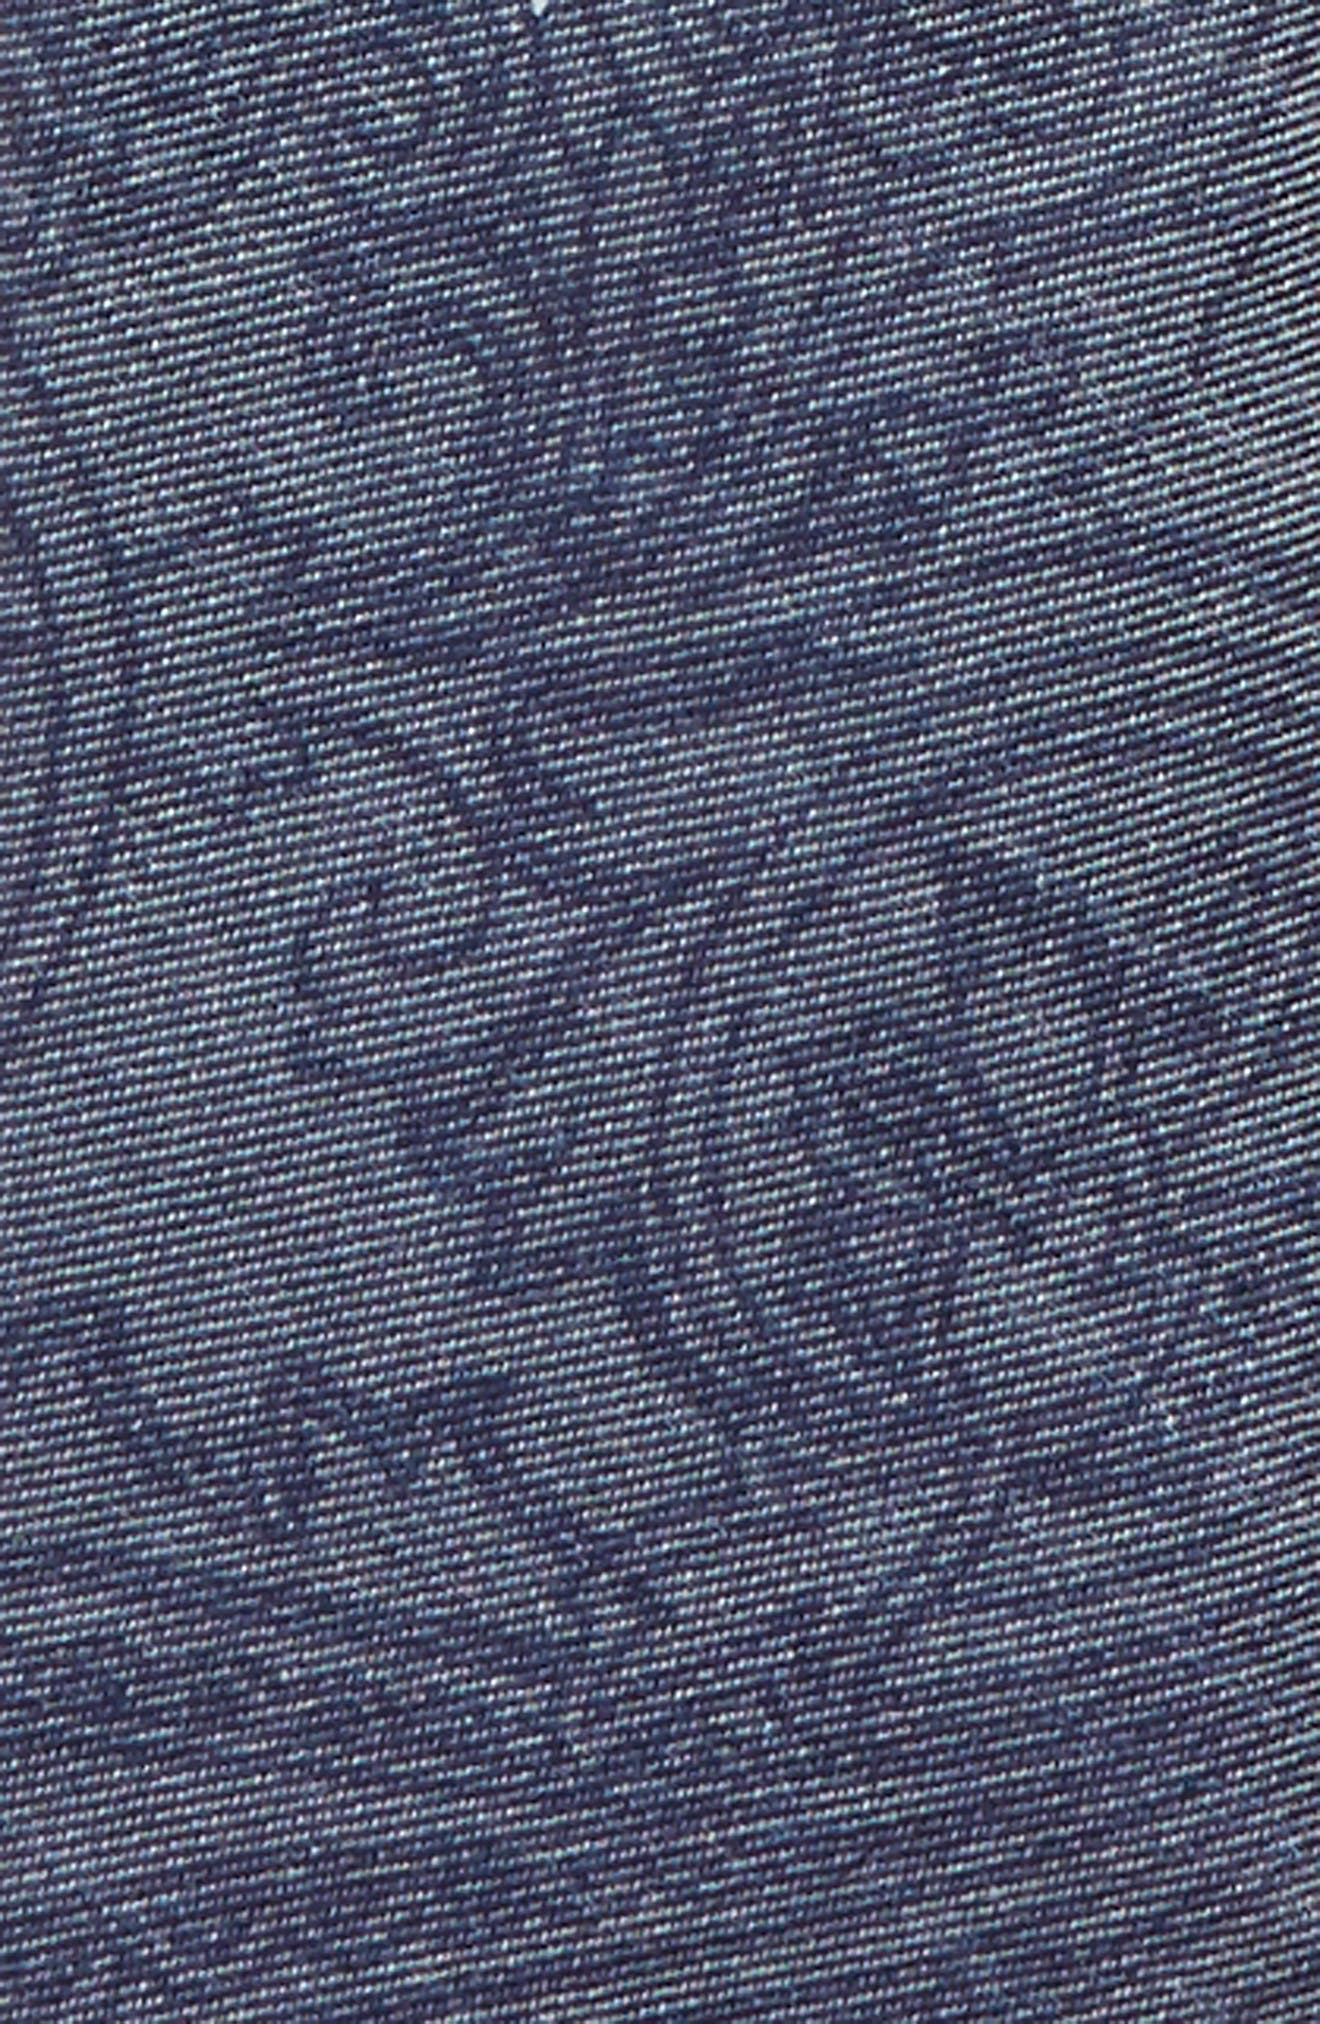 Paisley Cotton Blend Zip Tie,                             Alternate thumbnail 2, color,                             NAVY